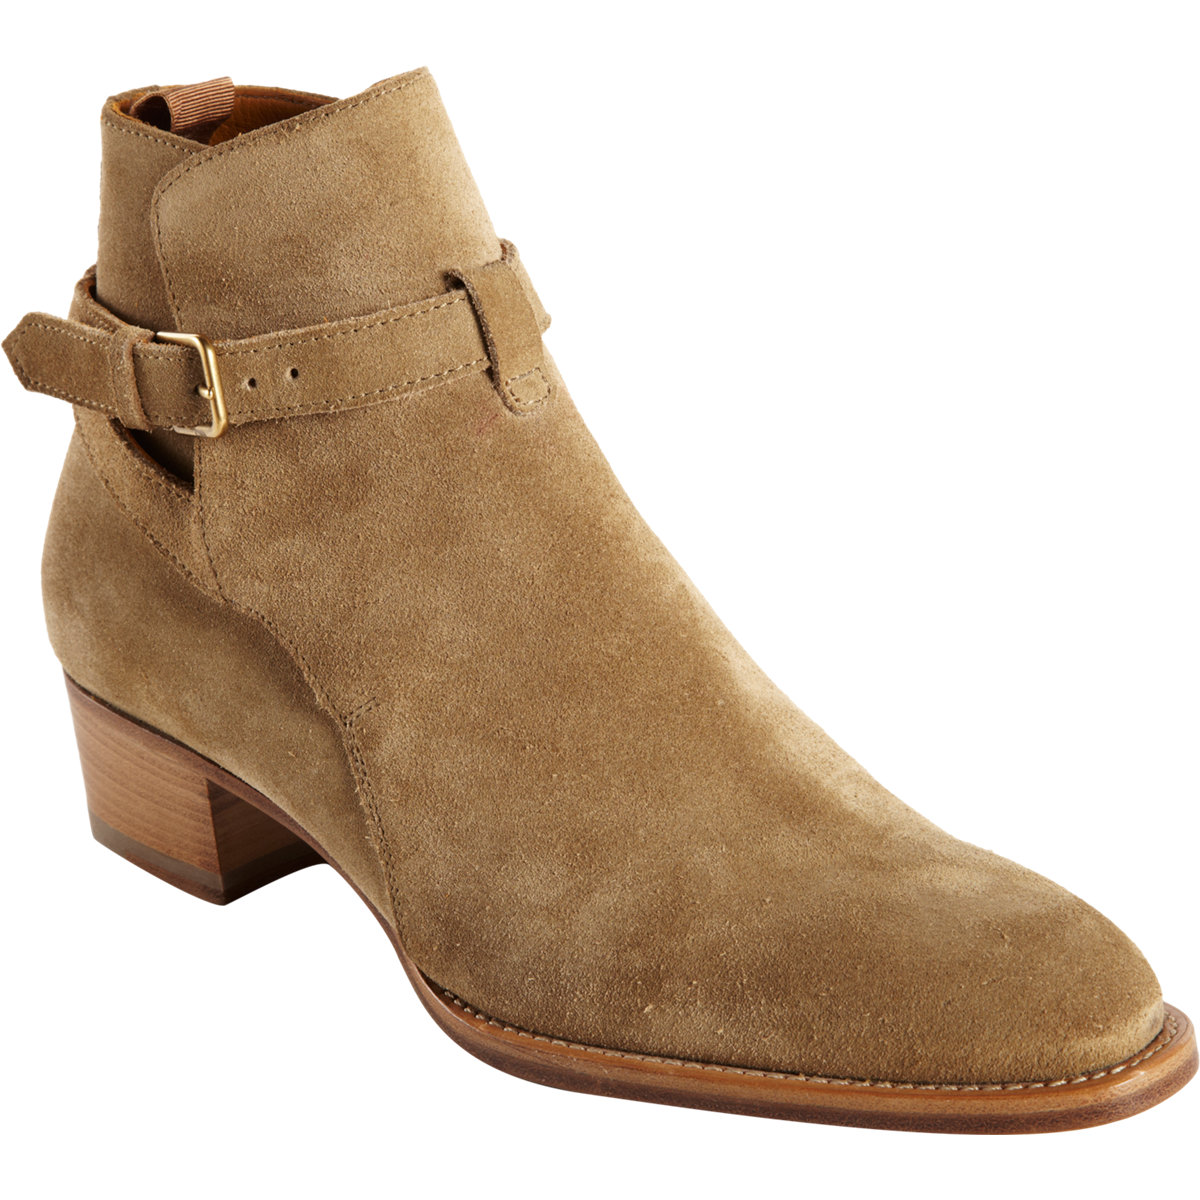 Saint laurent wyatt ankle boot at barneys.com